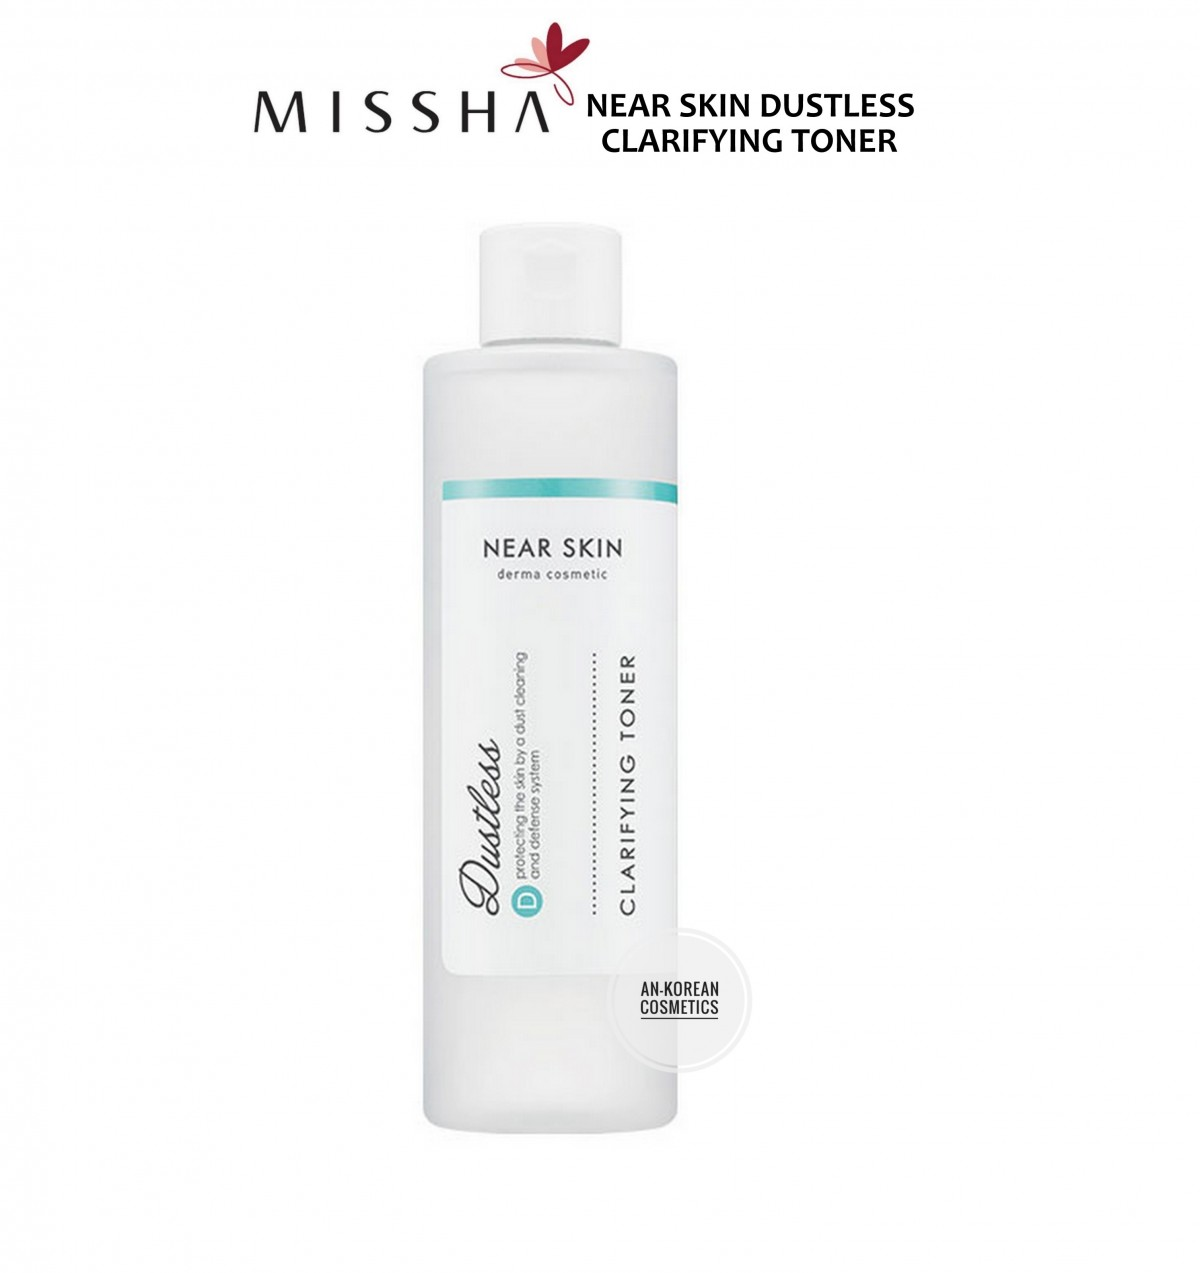 MISSHA Near Skin Dustless Clarifying Toner